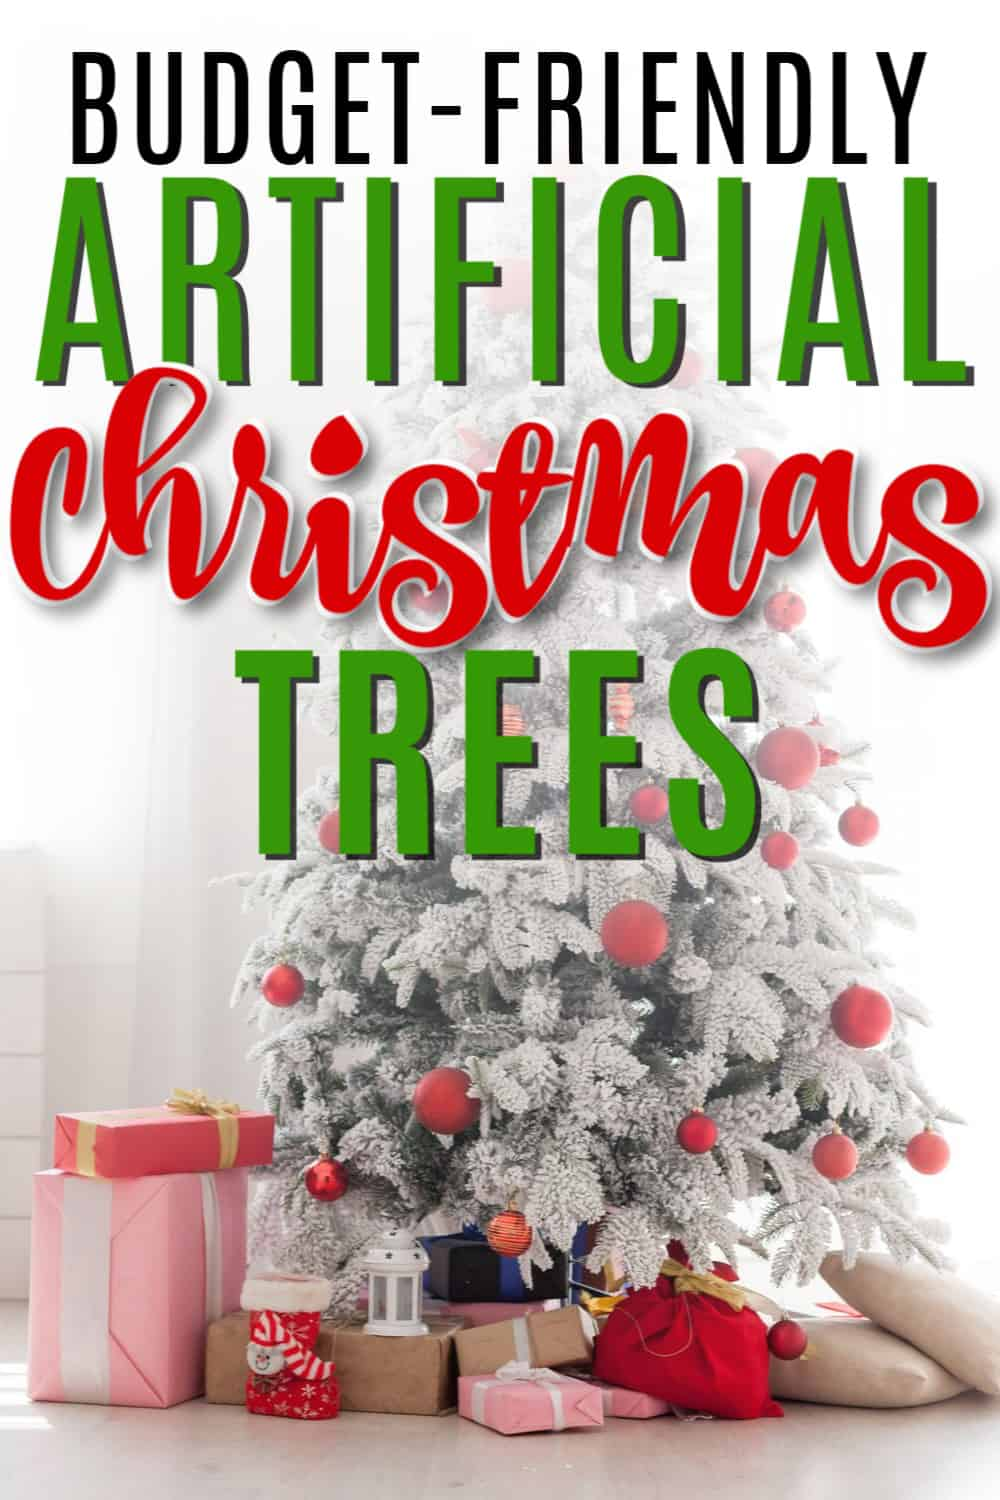 Budget-Friendly Artificial Christmas Trees